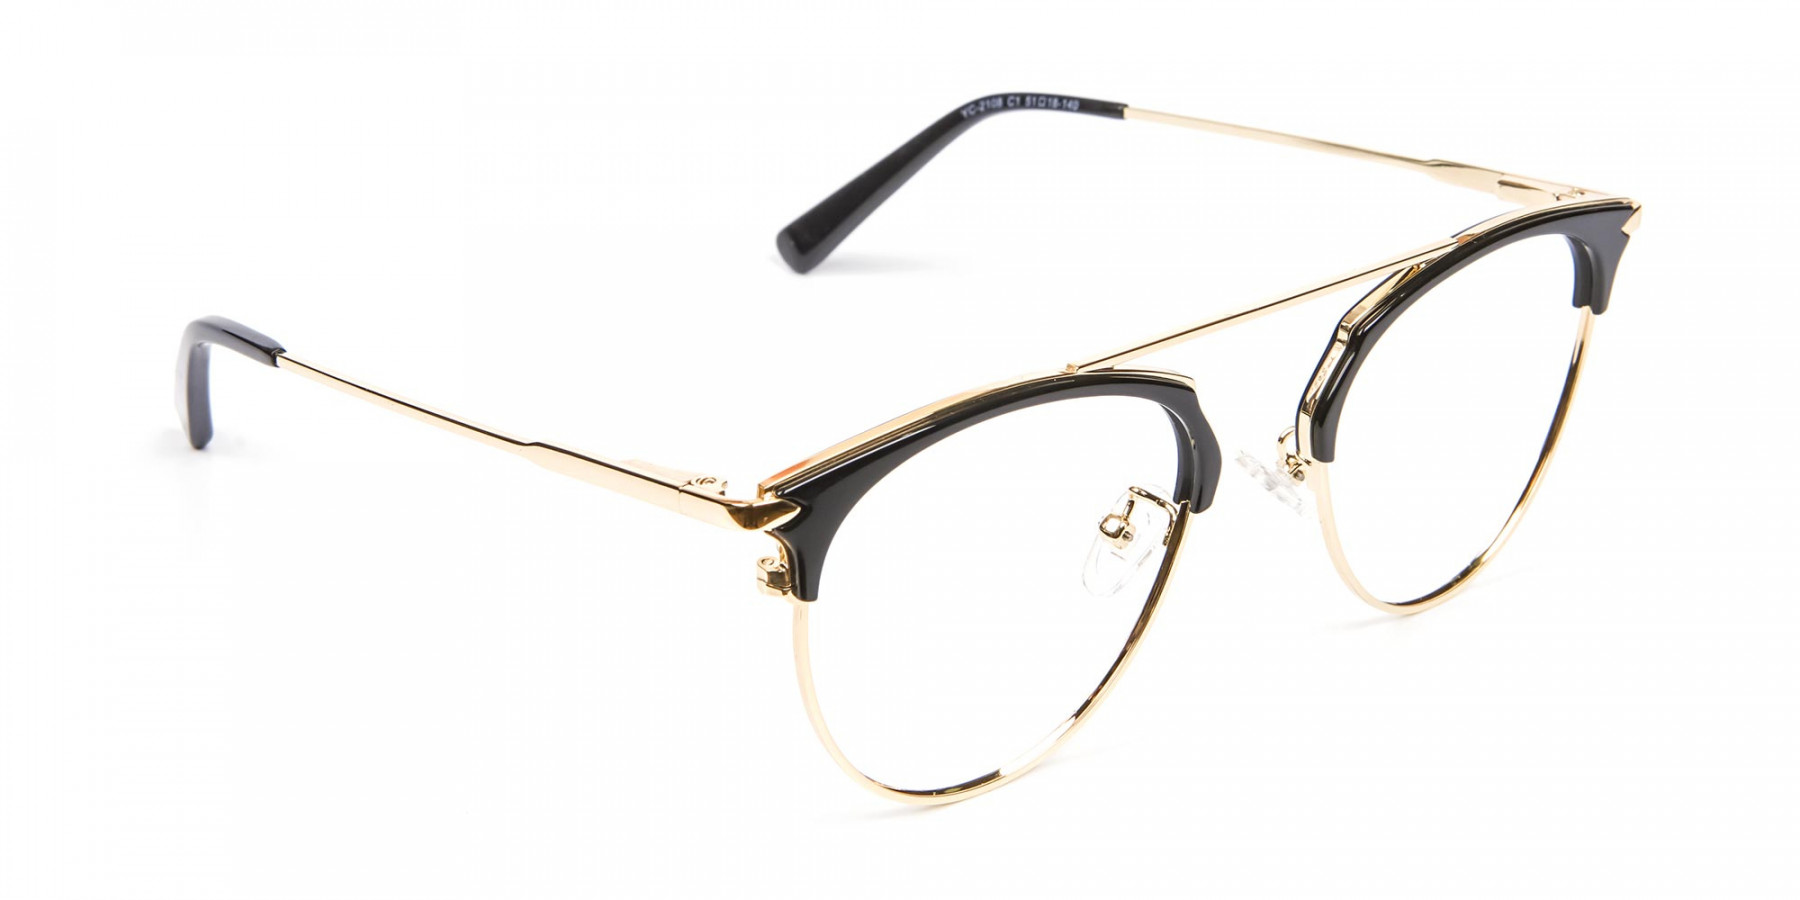 Black and Gold No-Nose Bridged Glasses